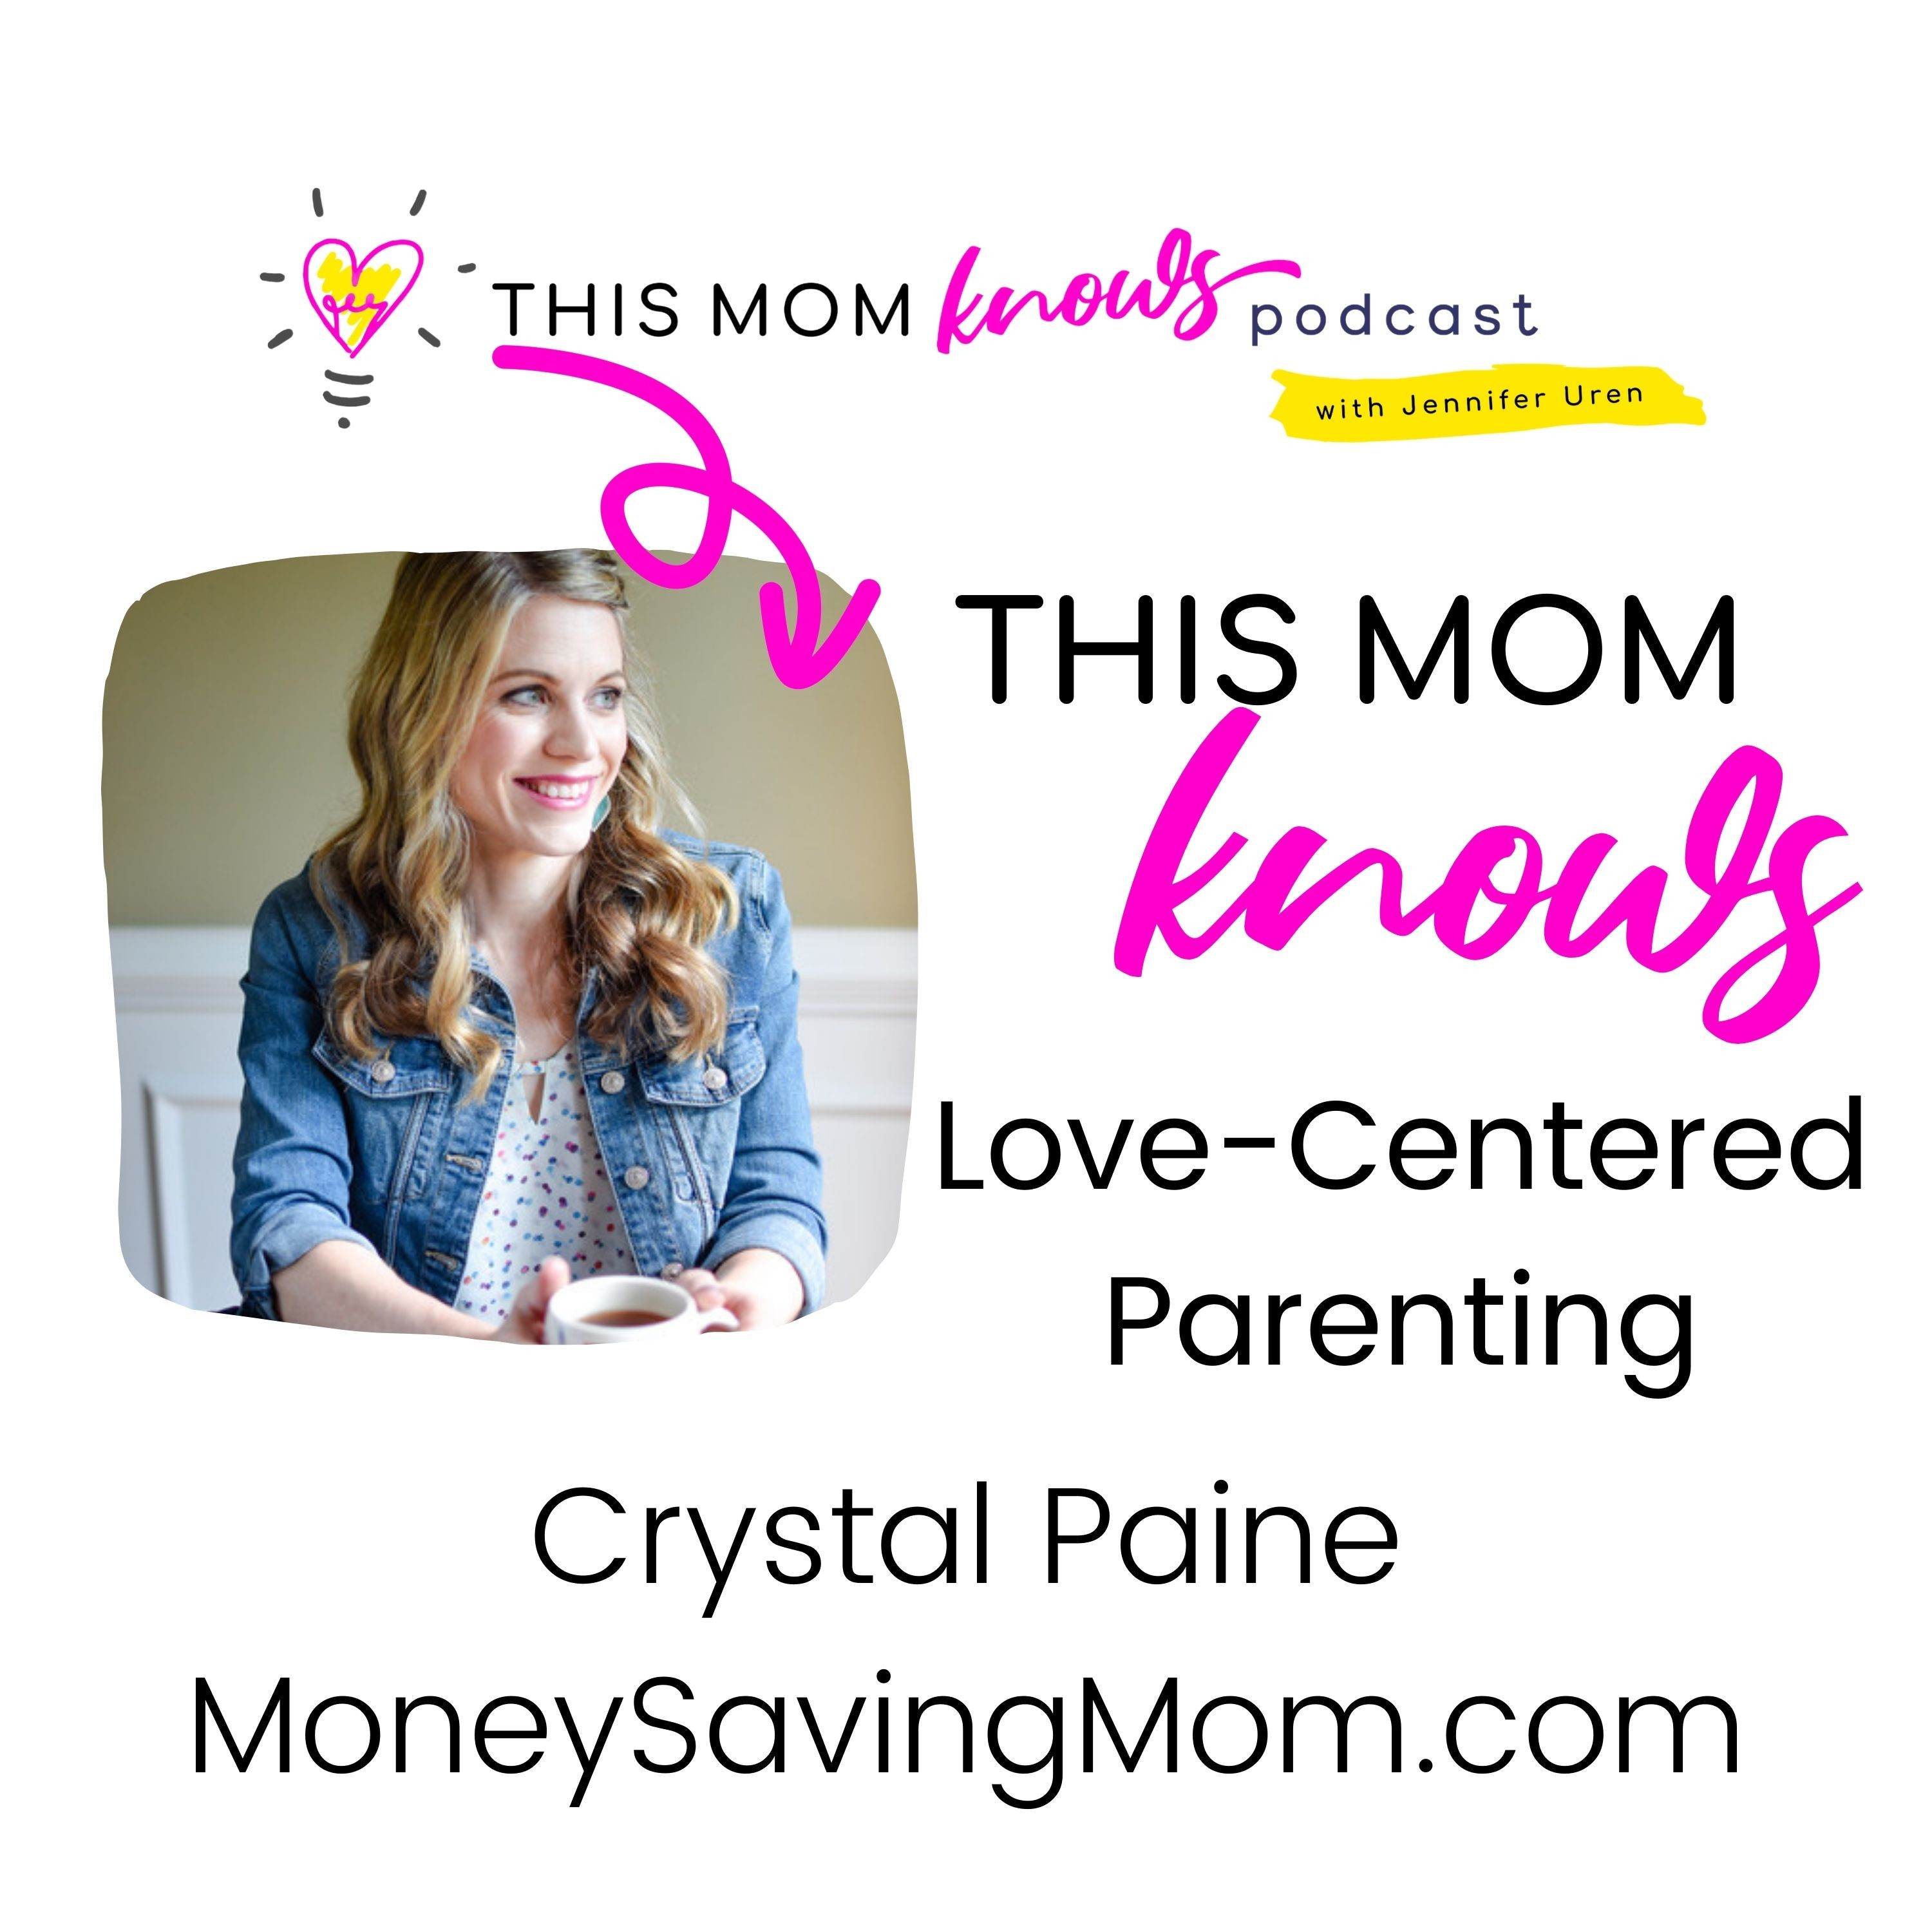 Crystal Paine on Love-Centered Parenting